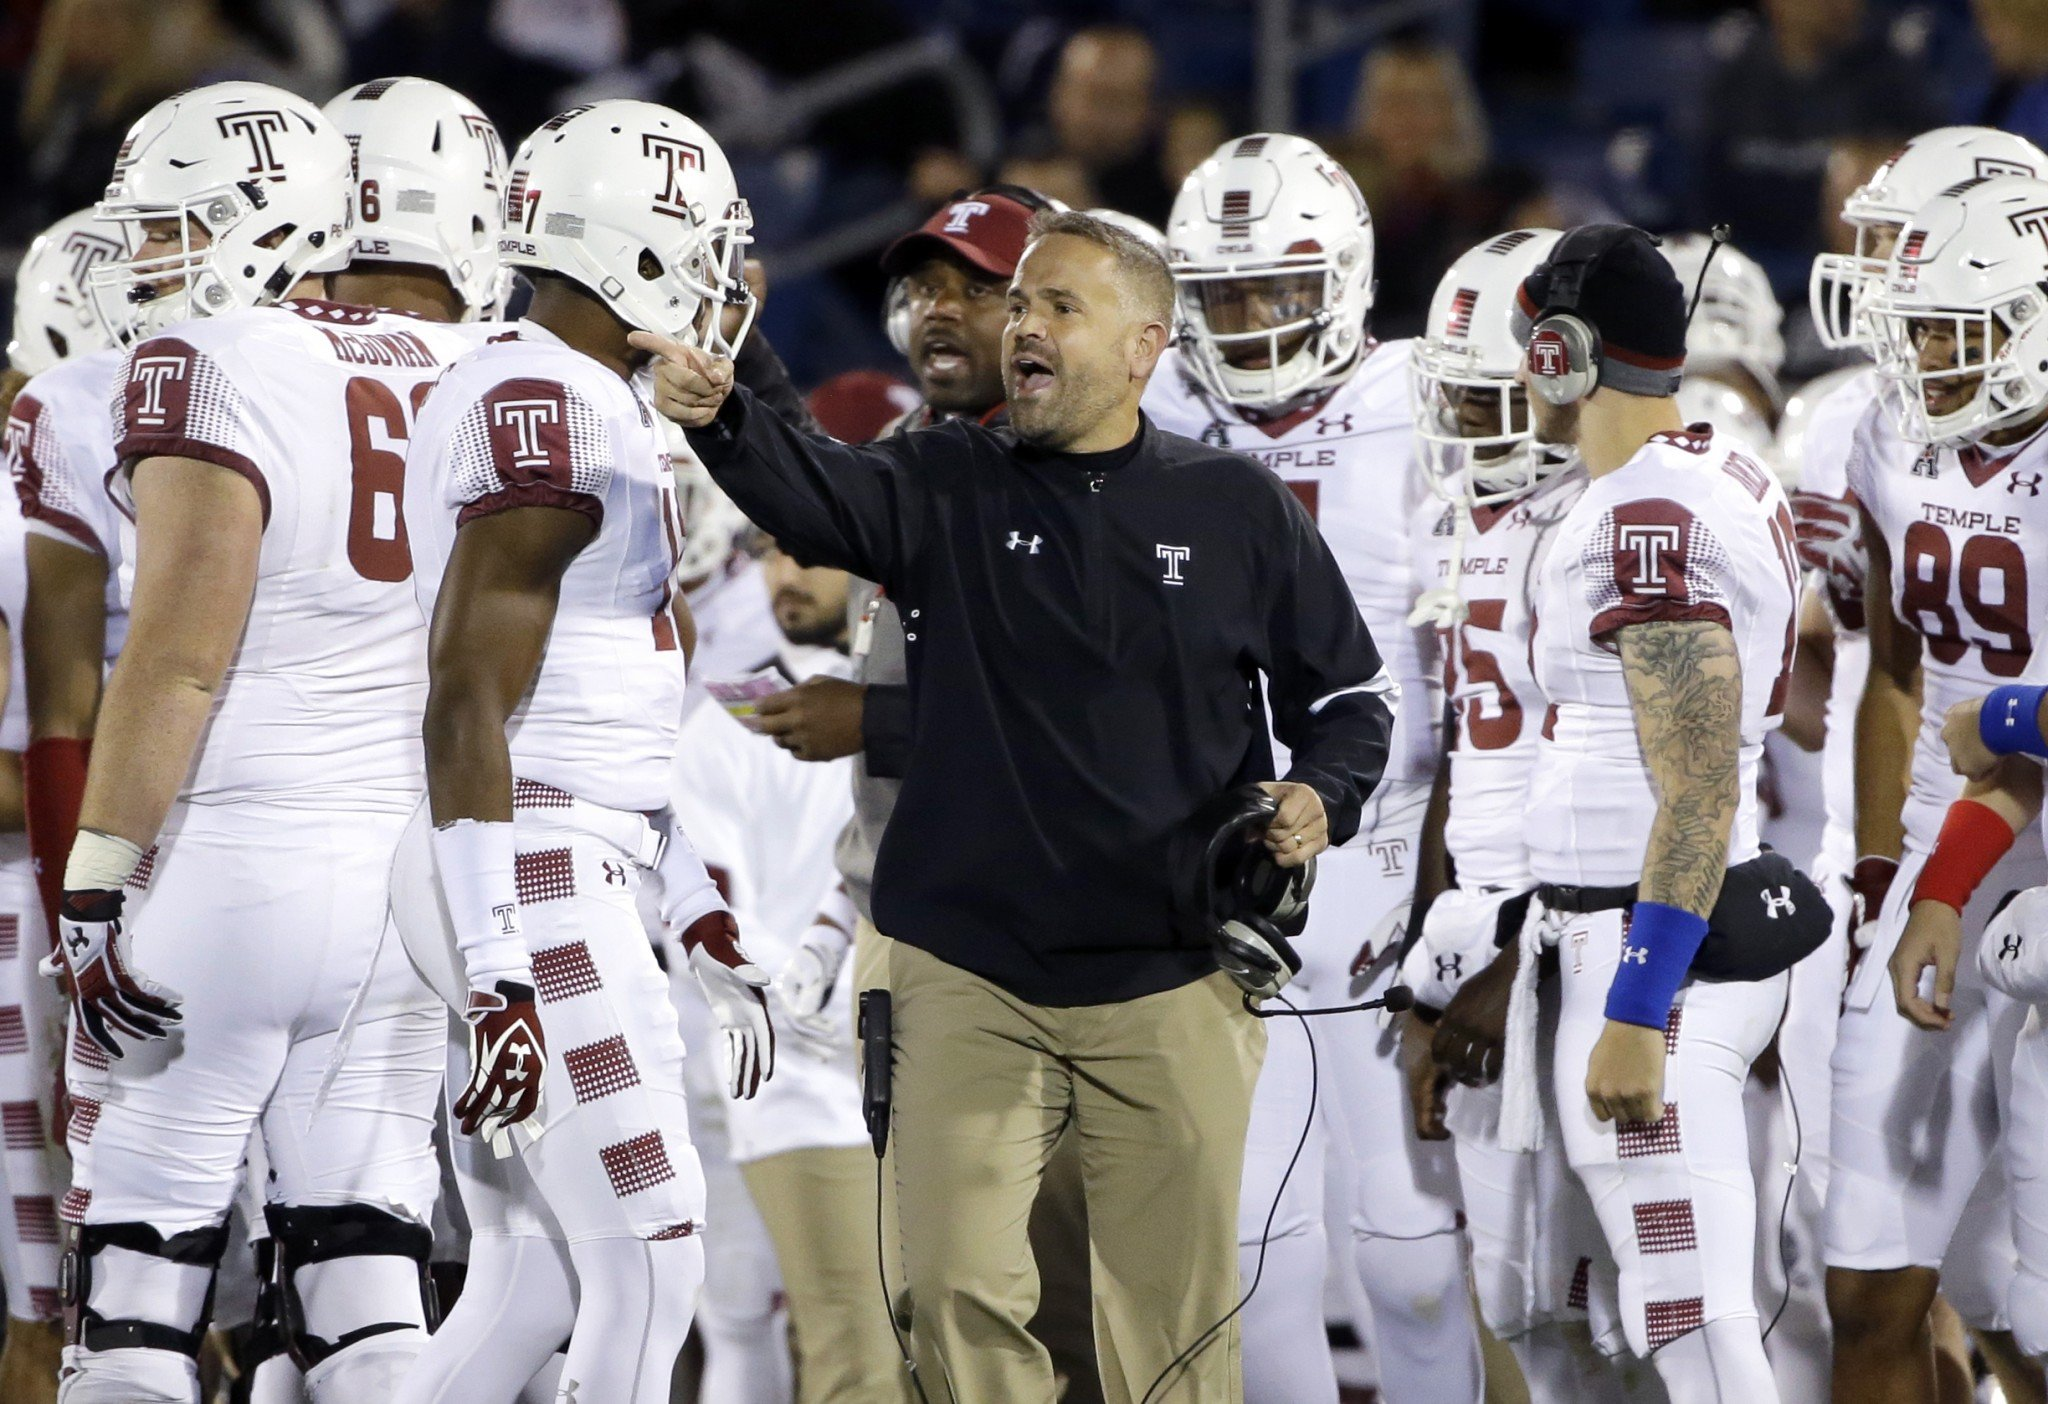 Matt Rhule led Temple to 10 wins and the AAC title this season. (AP Photo/Elise Amendola)